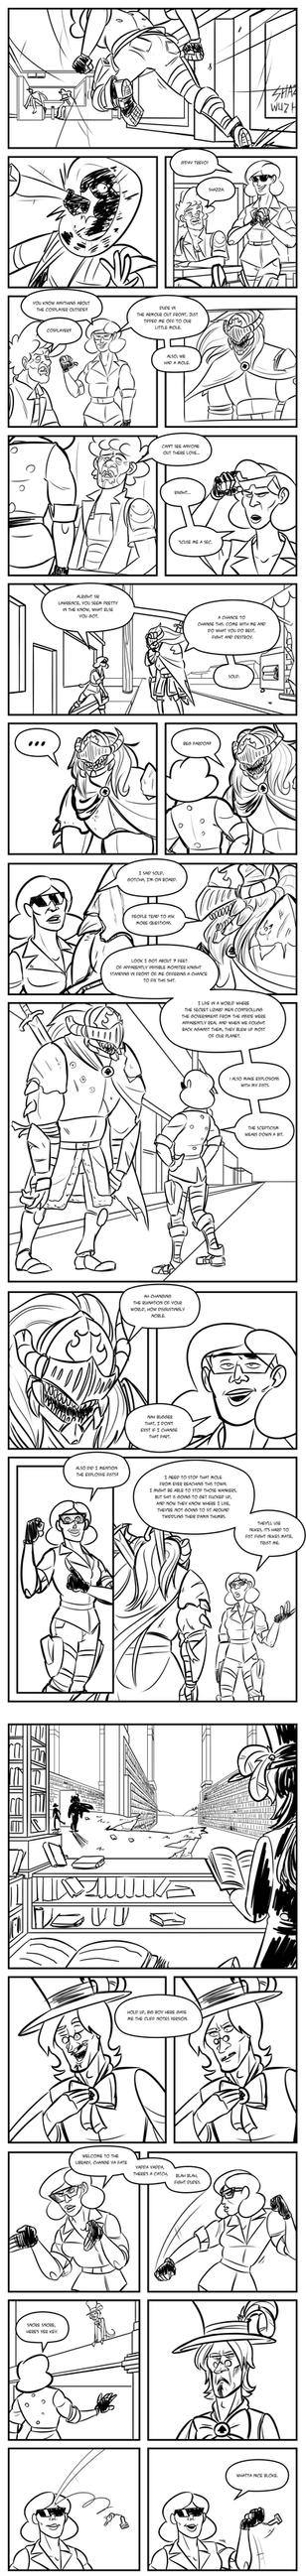 Second Draft OCT - Audition - Page 3 by Langry-The-First